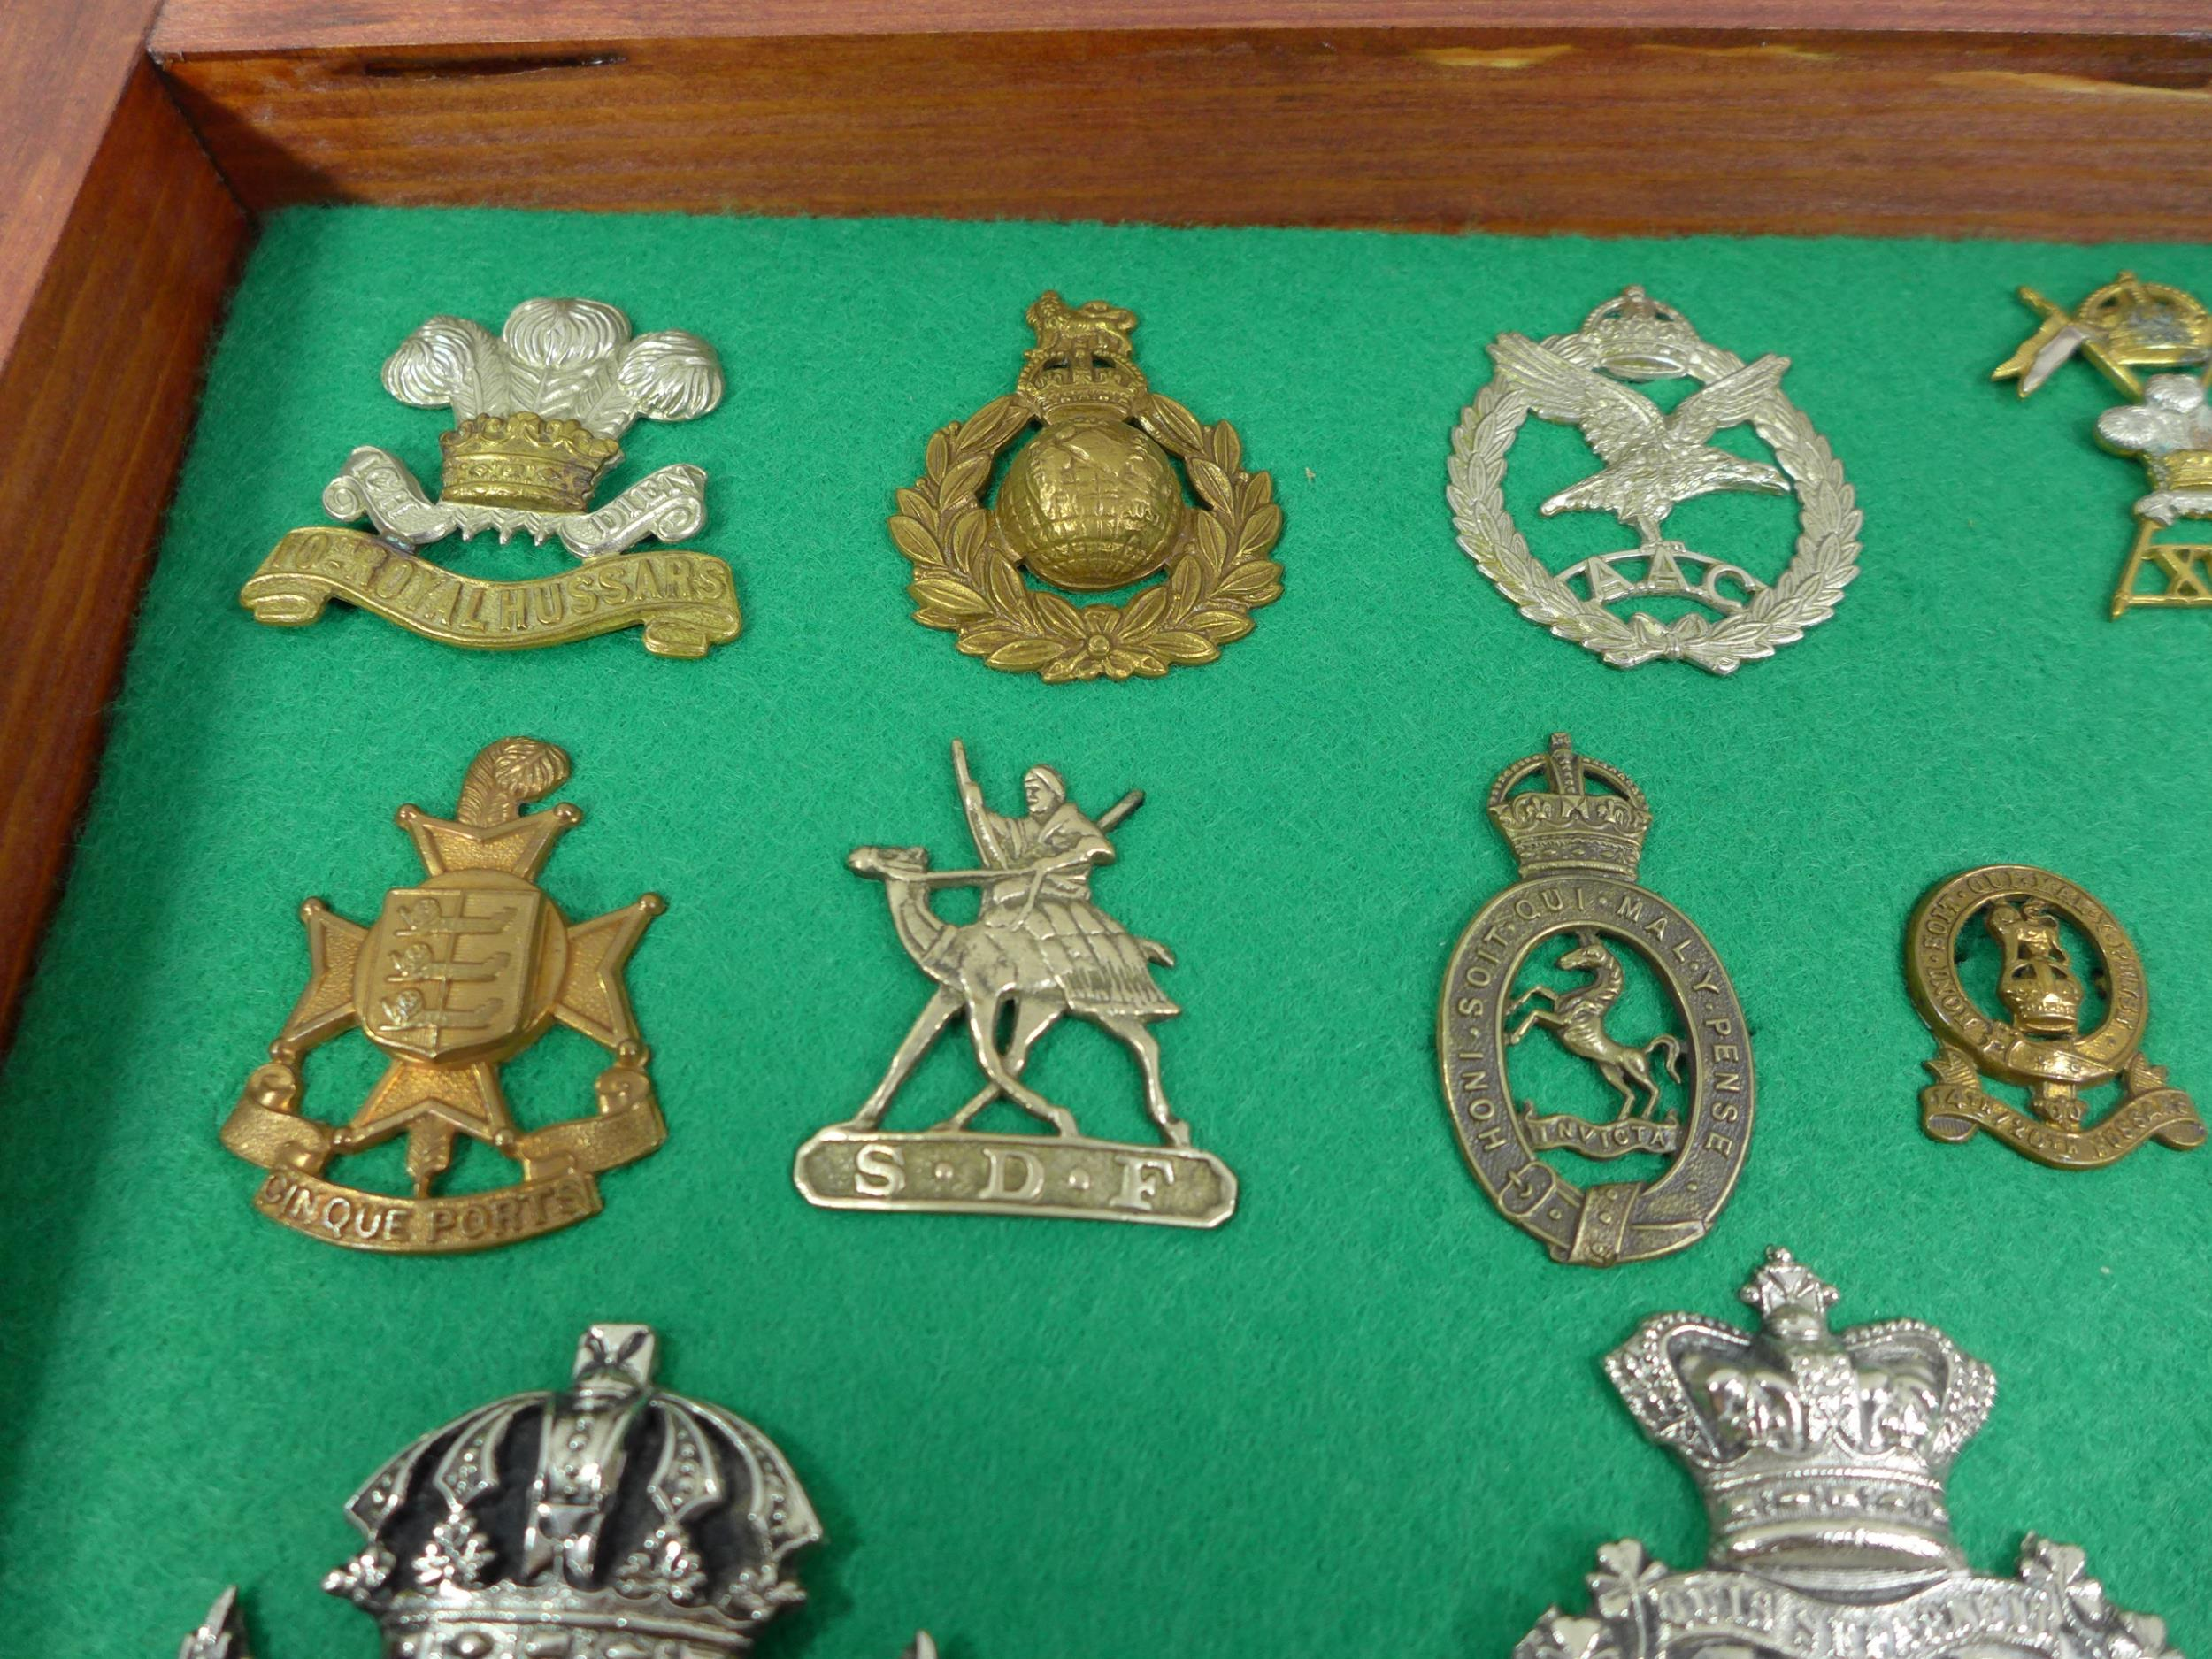 A GLAZED DISPLAY CASE CONTAINING THIRTY FIVE BRITISH MILITARY BADGES, 33CM X 49CM - Image 3 of 6